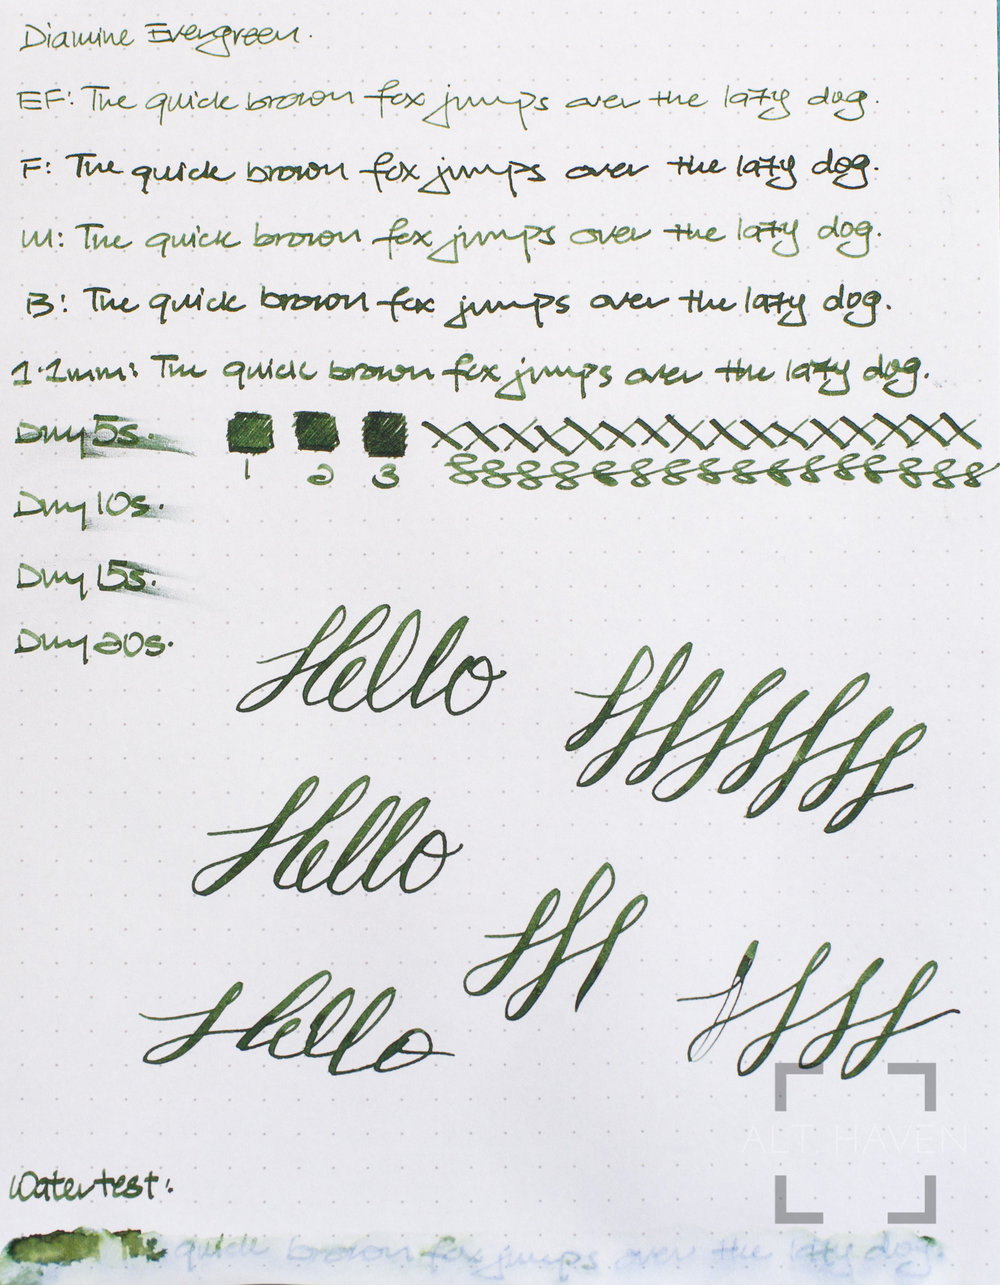 Diamine Evergreen.jpg